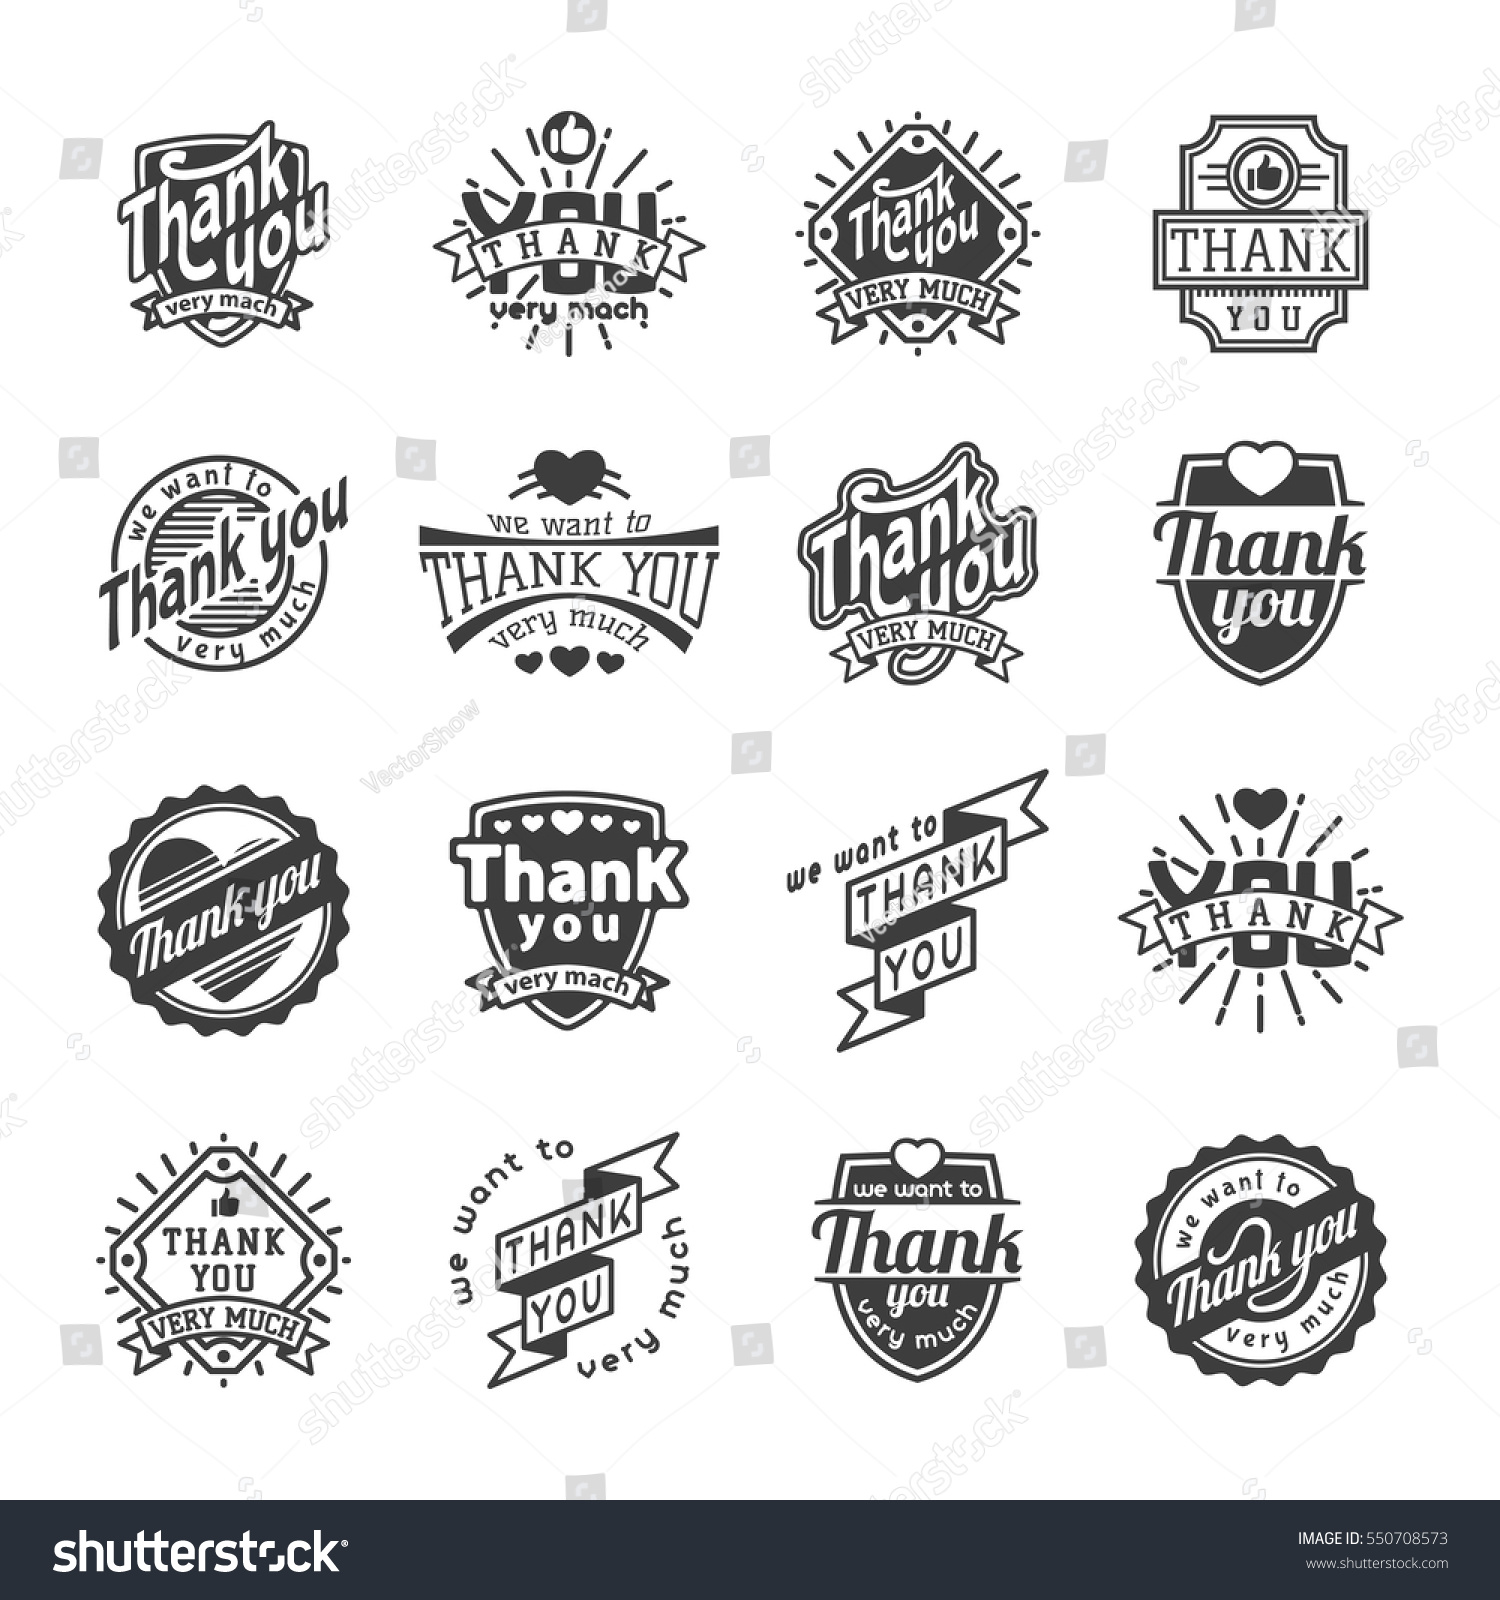 Thank You Text Lettering Vector Logo Stock Vector Royalty Free